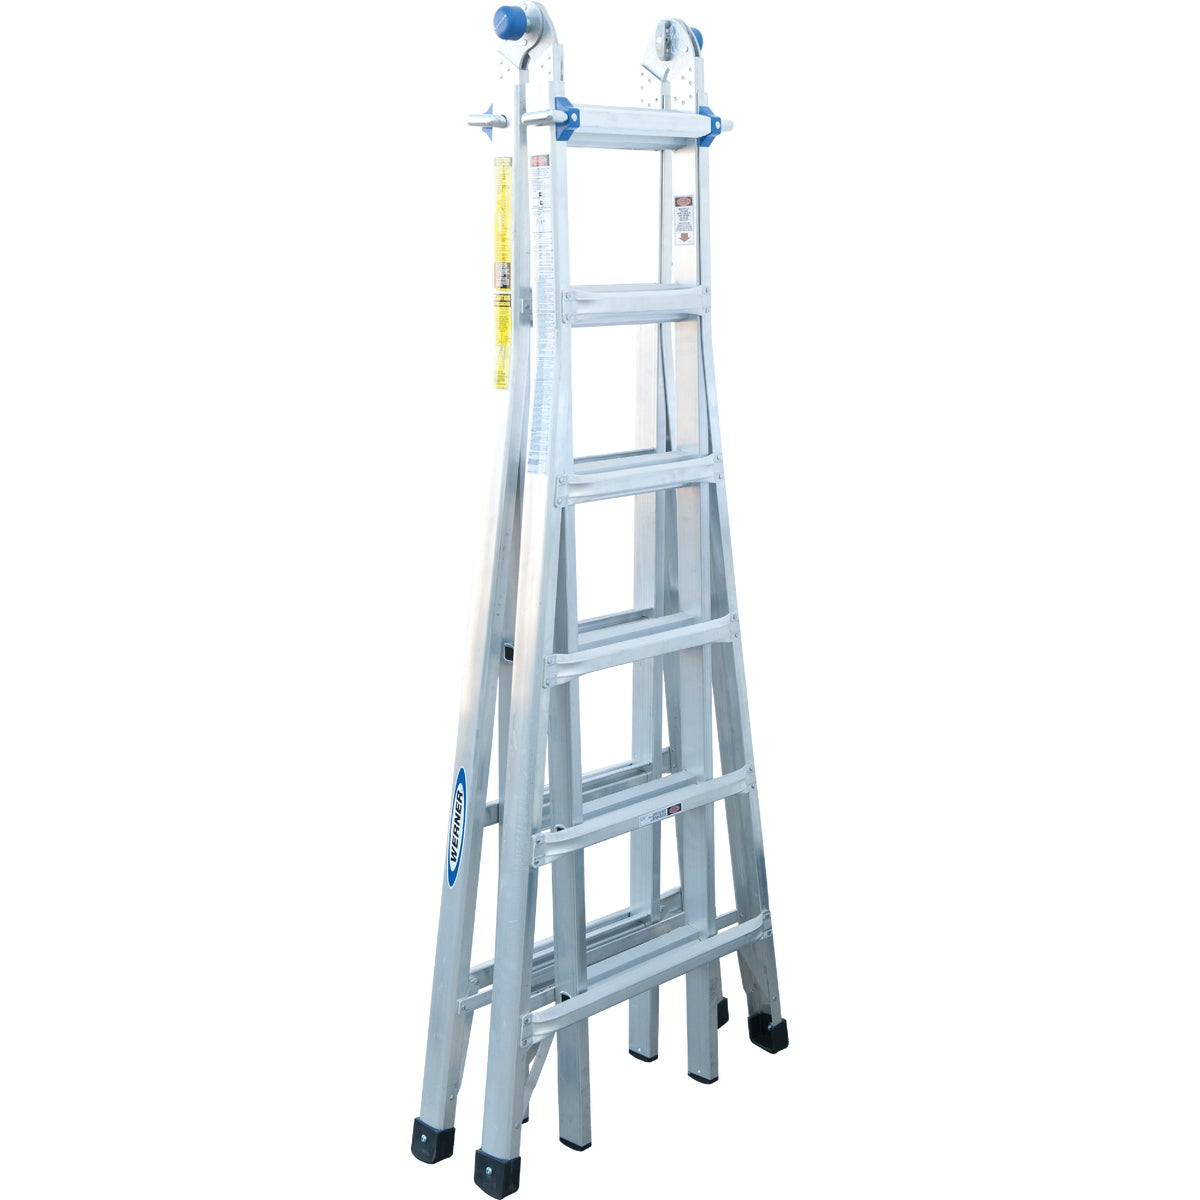 26' ALUM TELSCOPE LADDER - MT-26 by Werner Ladder